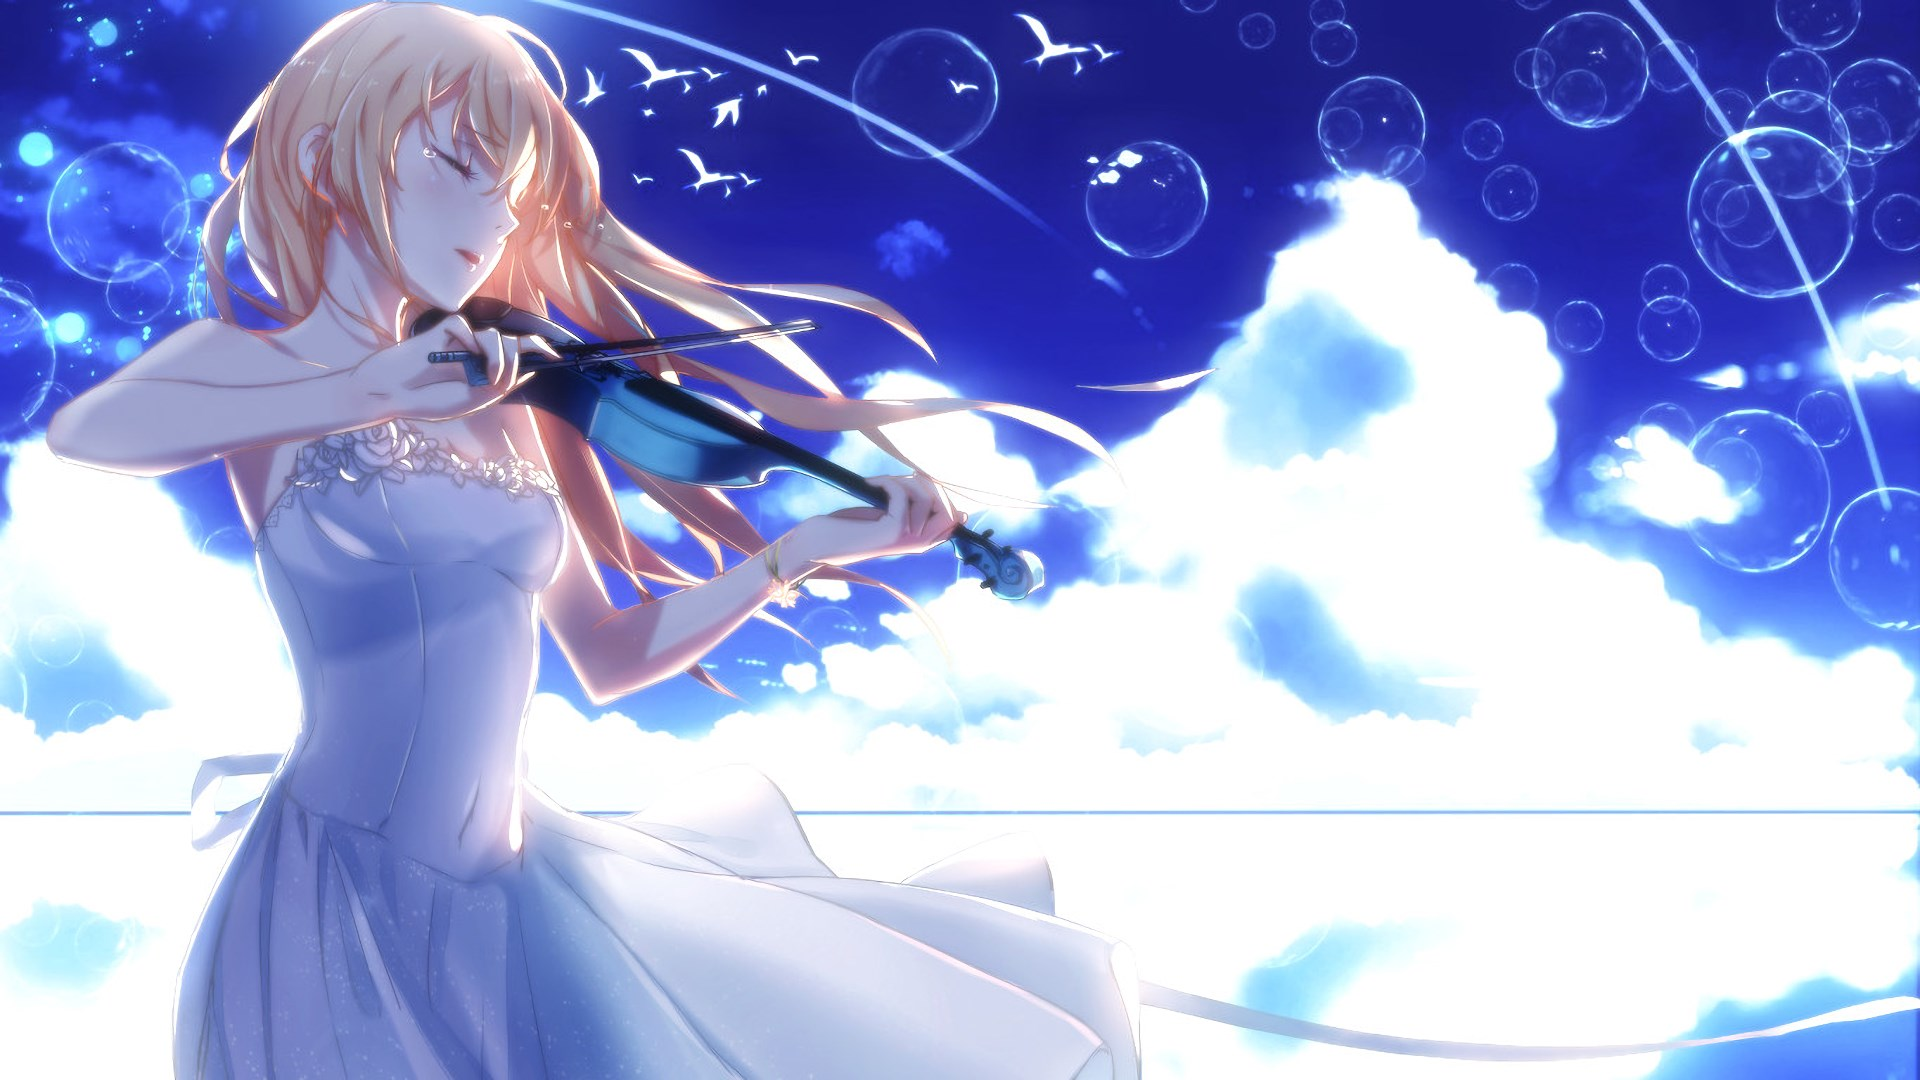 1920 1080 Free And Screensavers For Your Lie In April Your Lie